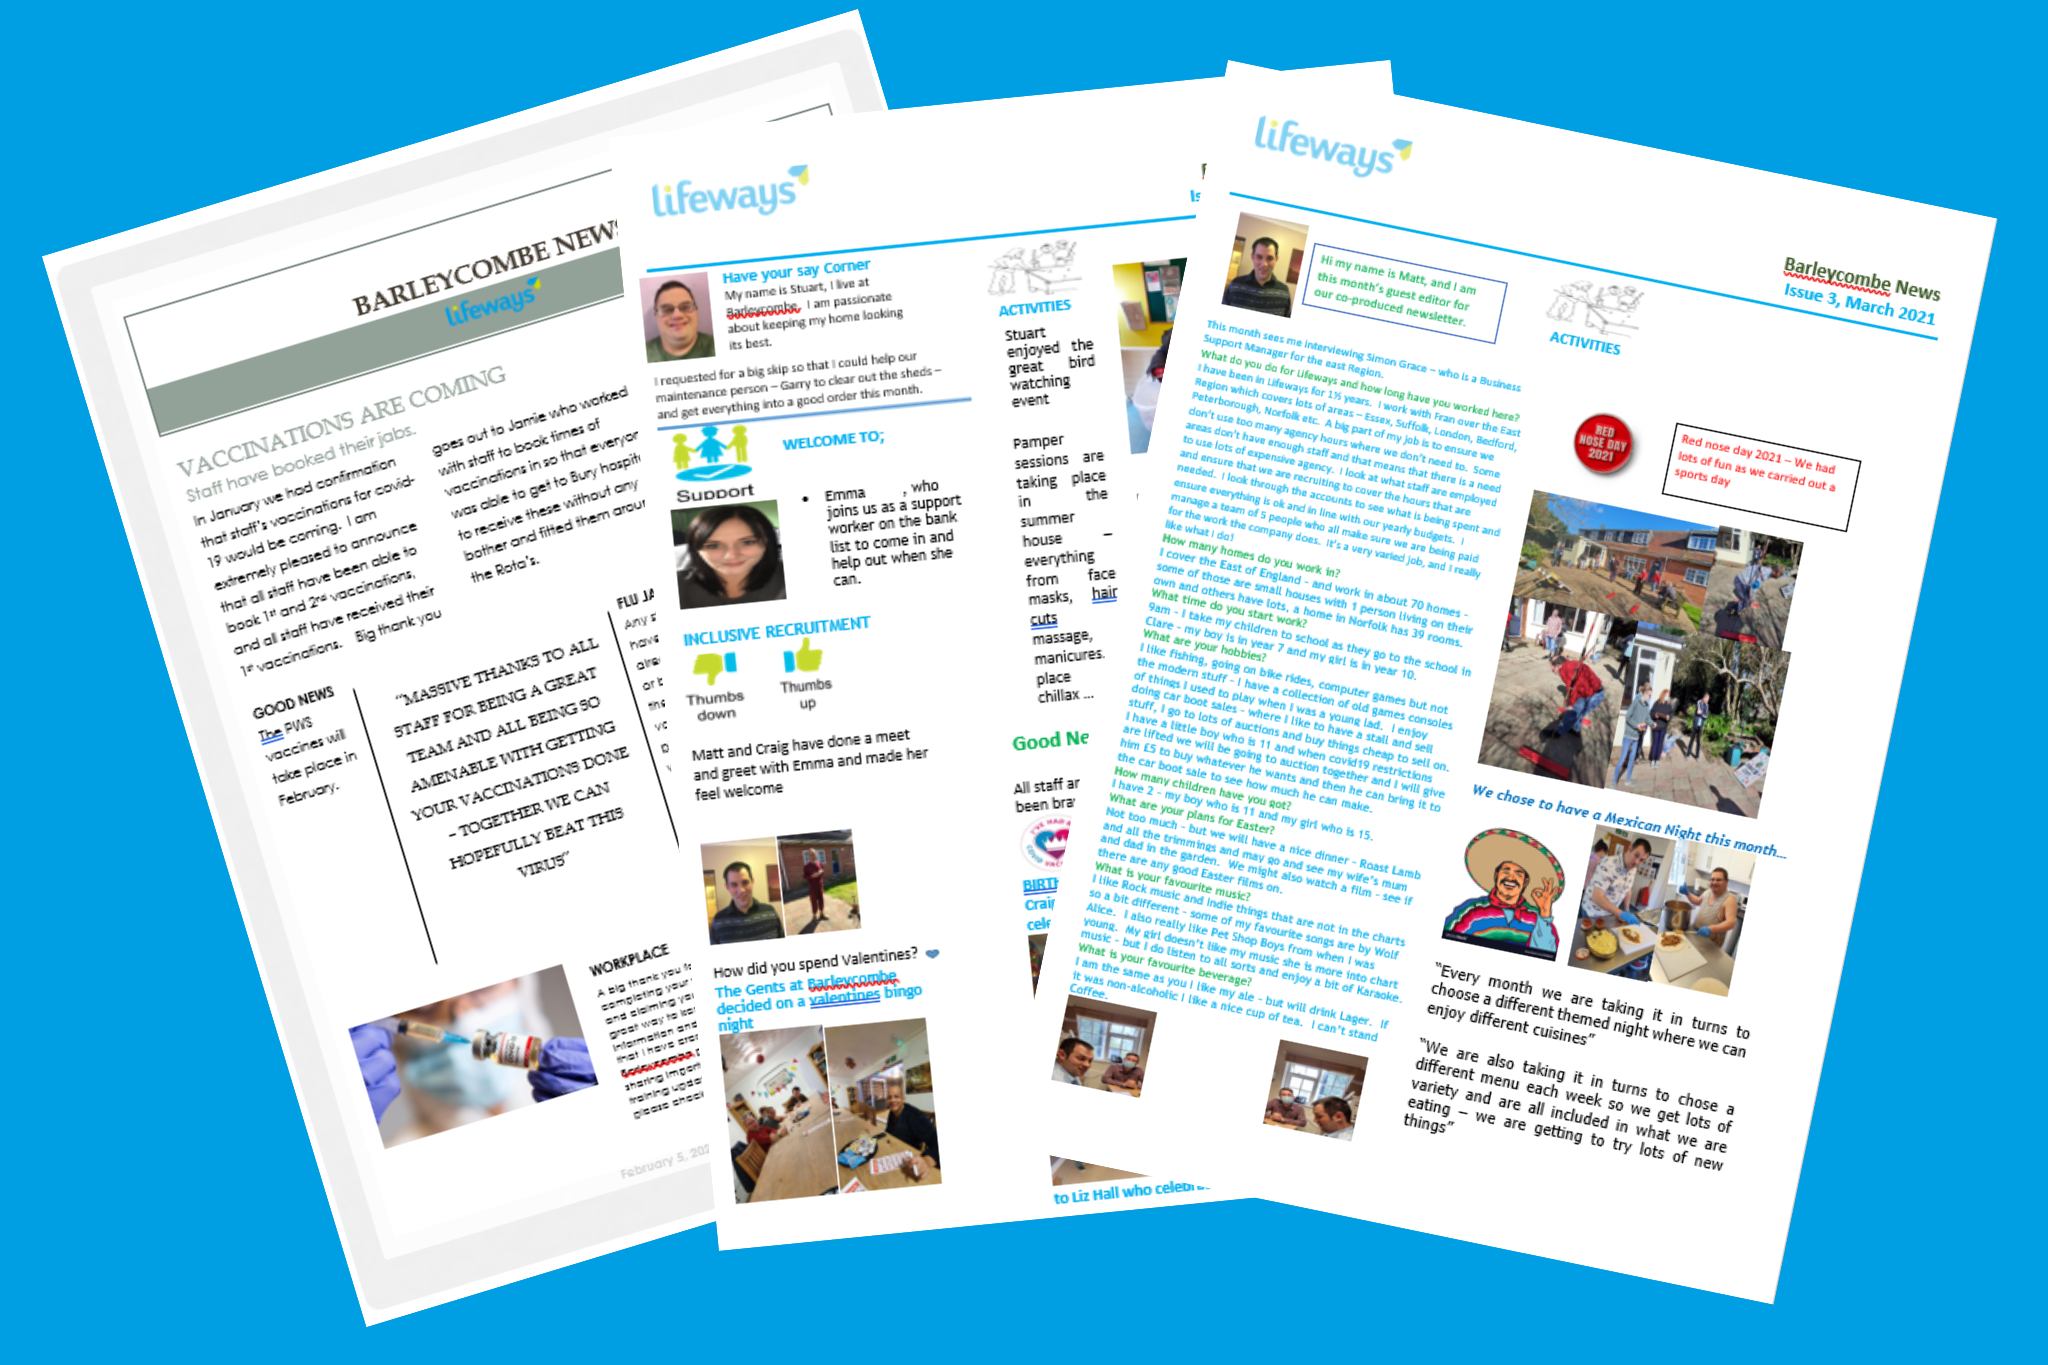 barlyecombe suffolk newsletter lifeways co-production